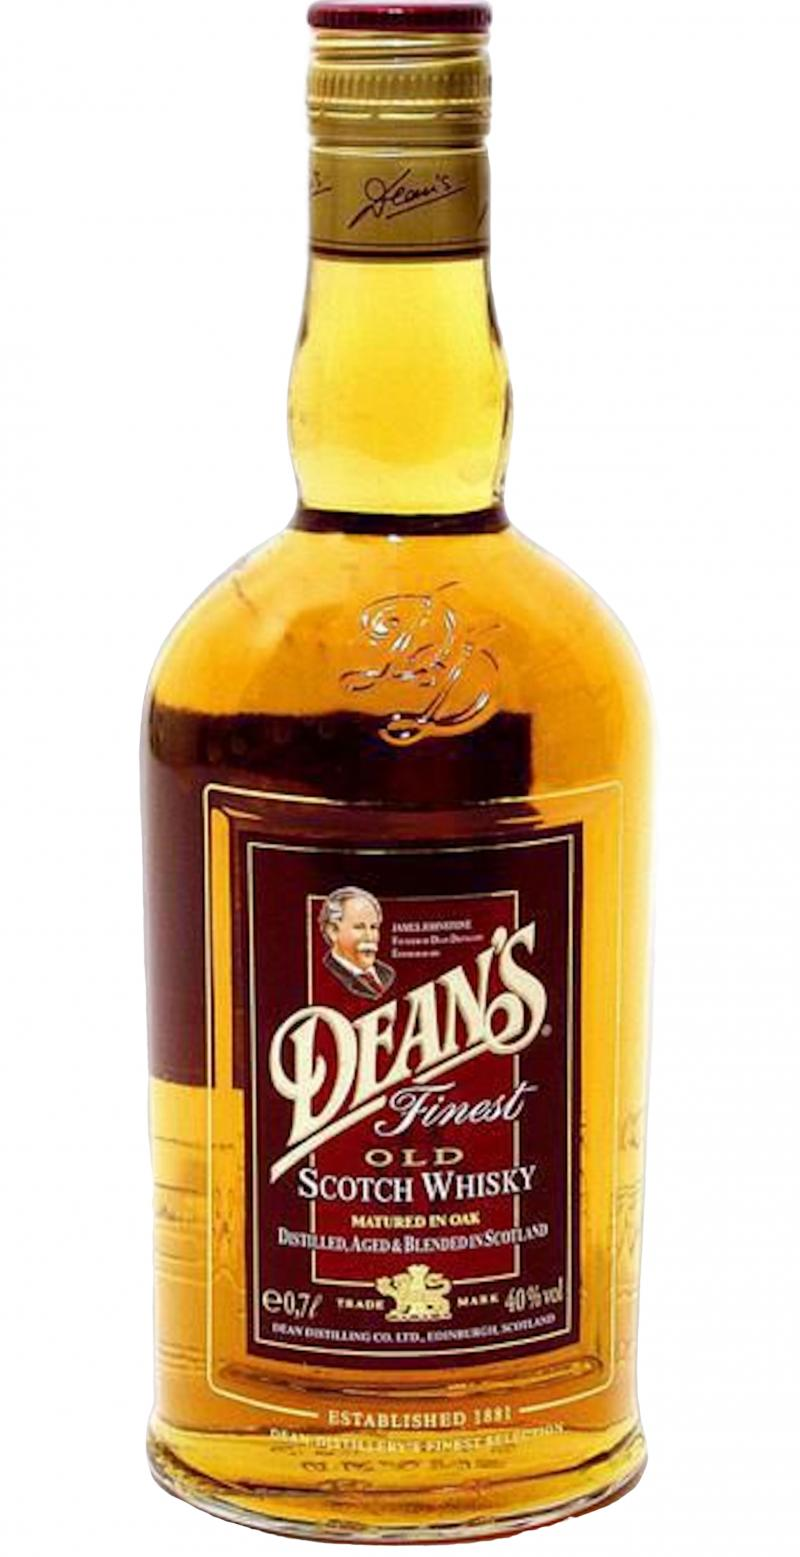 Dean's Finest Old Scotch Whisky